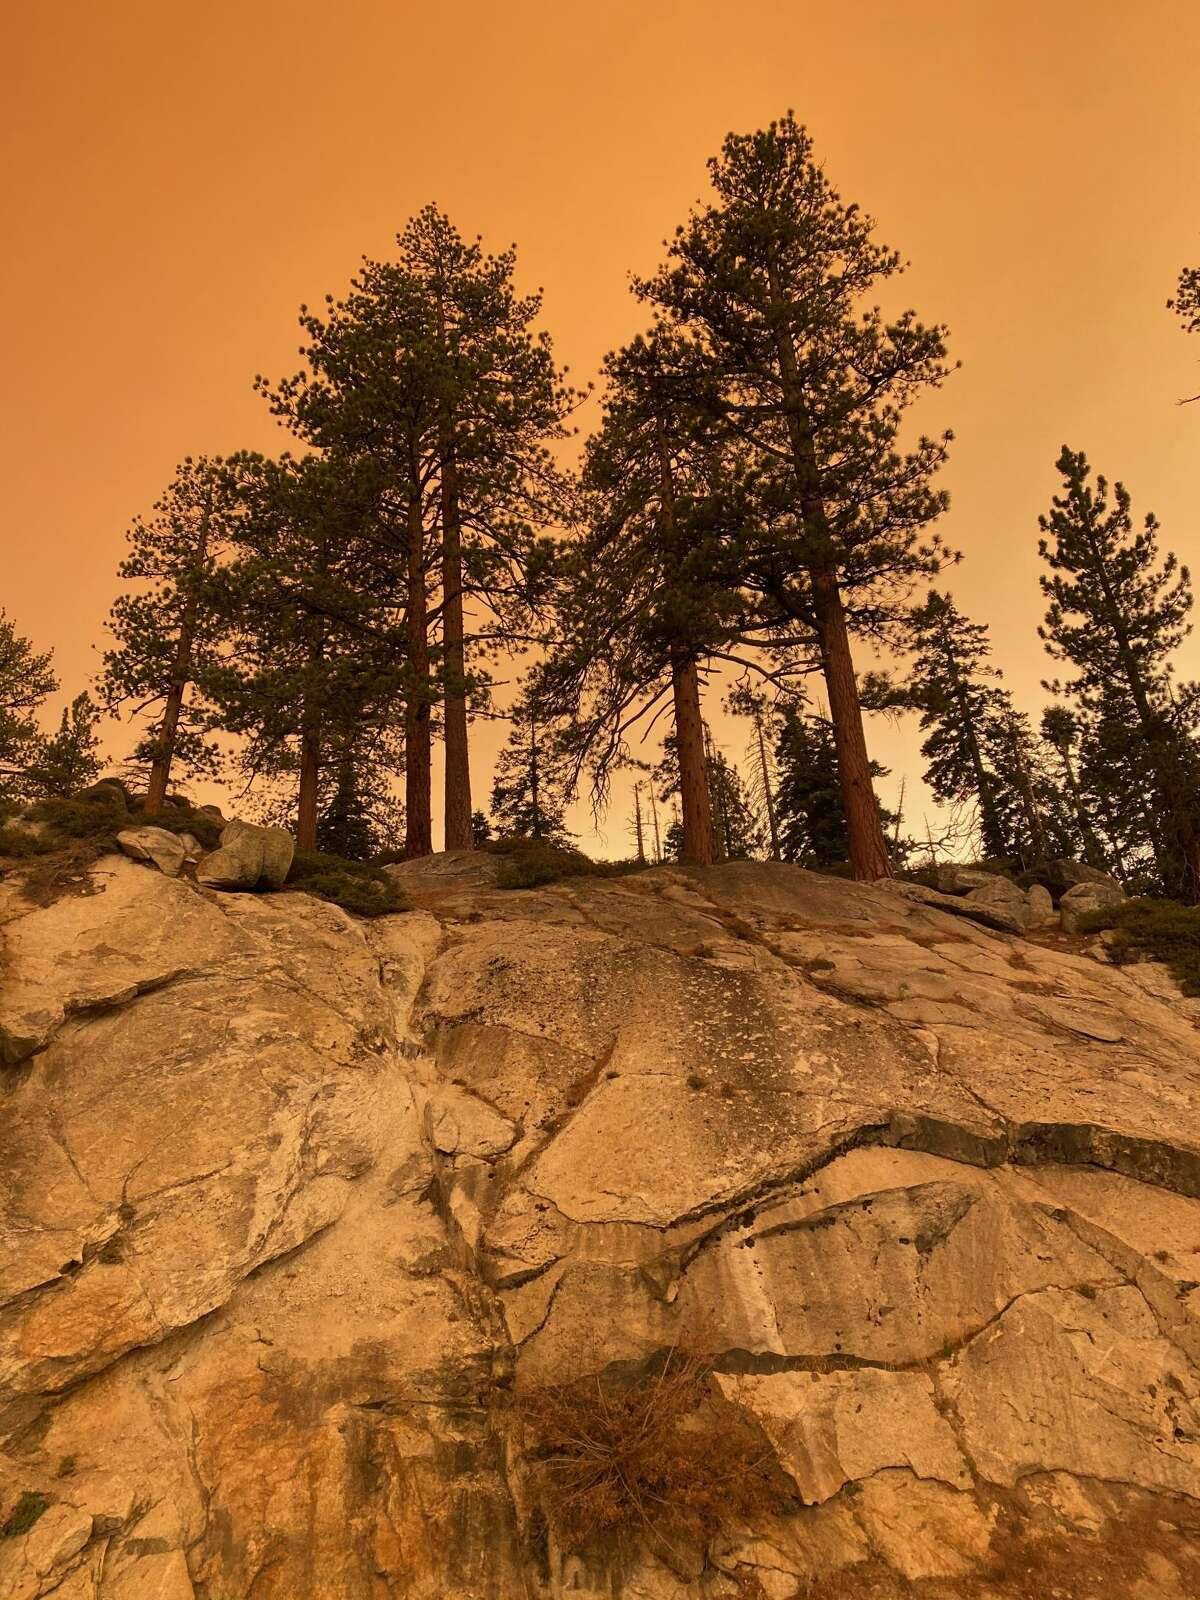 Air quality reached dangerously levels in Yosemite on Wednesday, Sept. 9.